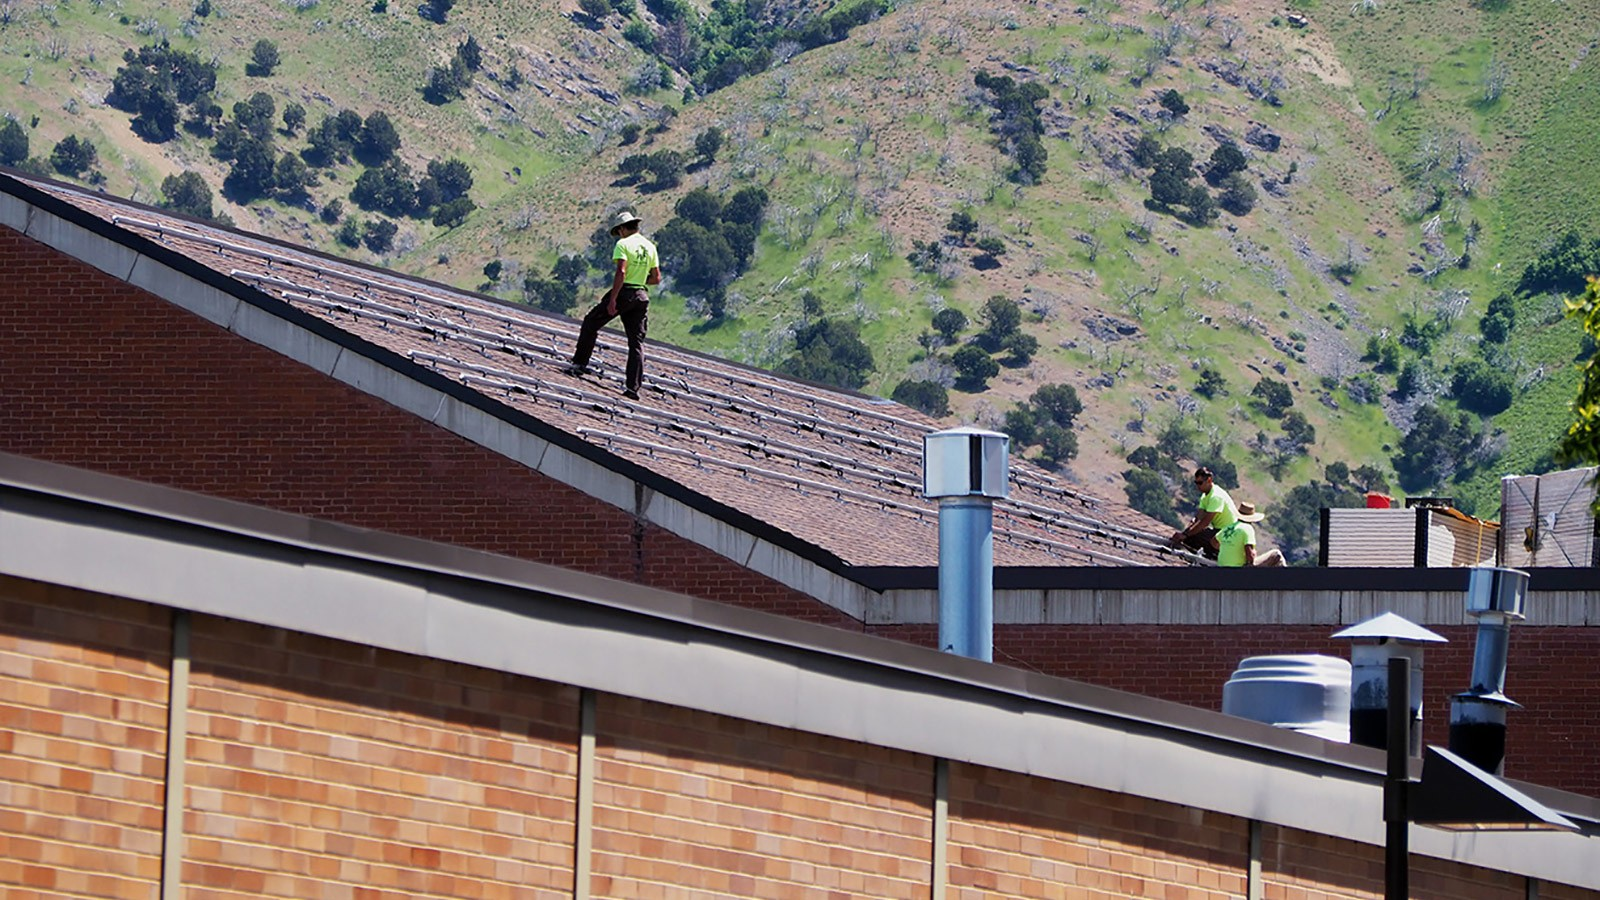 Construction workers installing solar panels on top of the fine arts visual building.